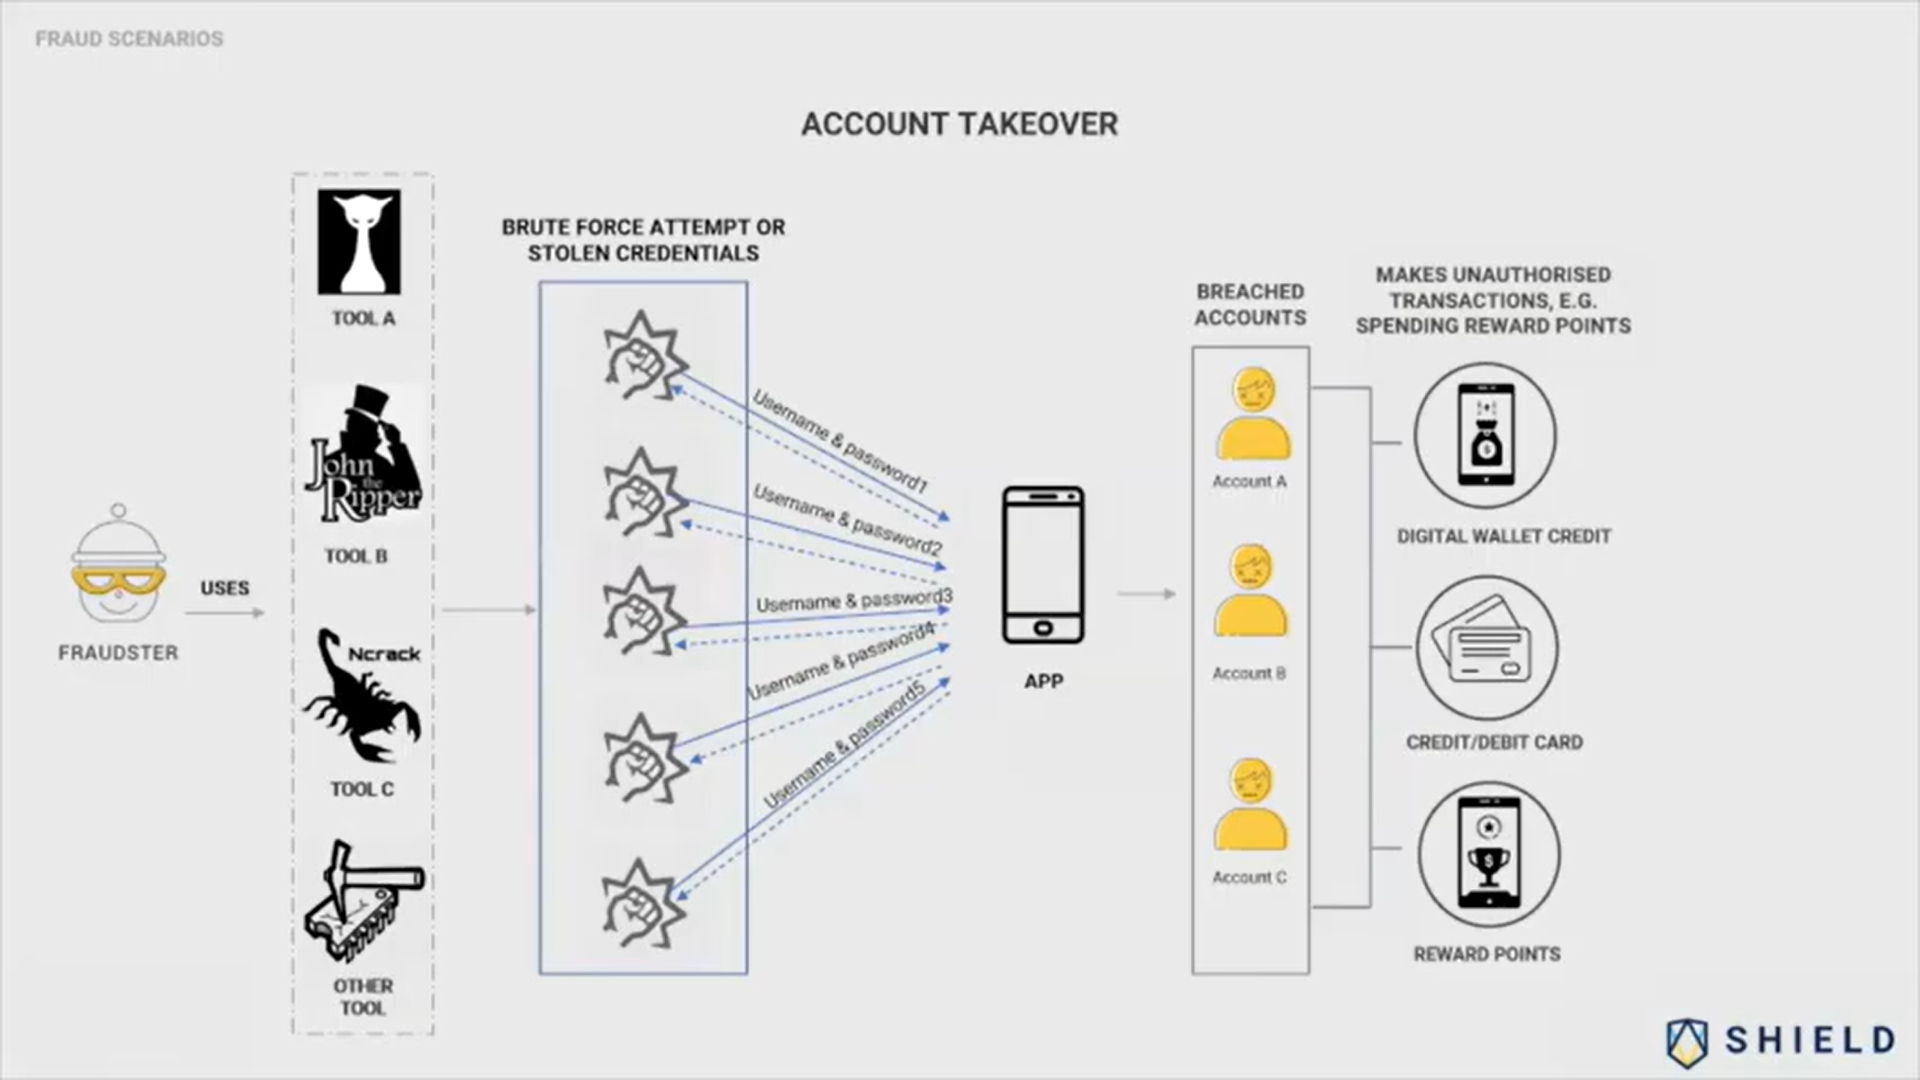 How account takeovers happen